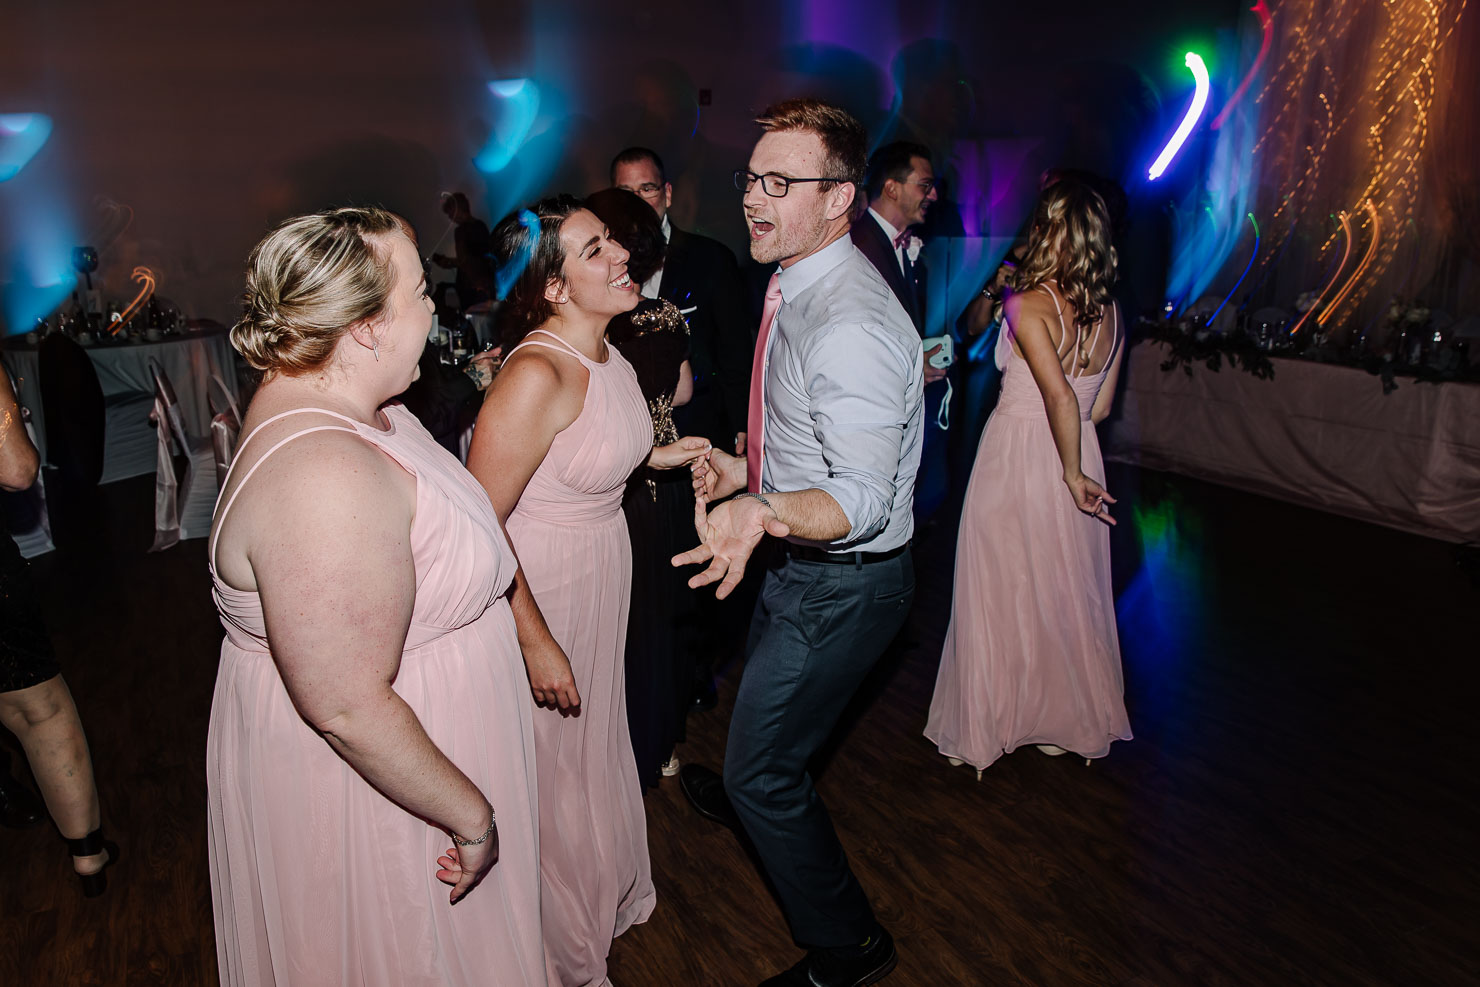 Party, wedding, Joey Niceforo, bride and groom, wedding, sudbury wedding, akaiserphoto, wedding photographer